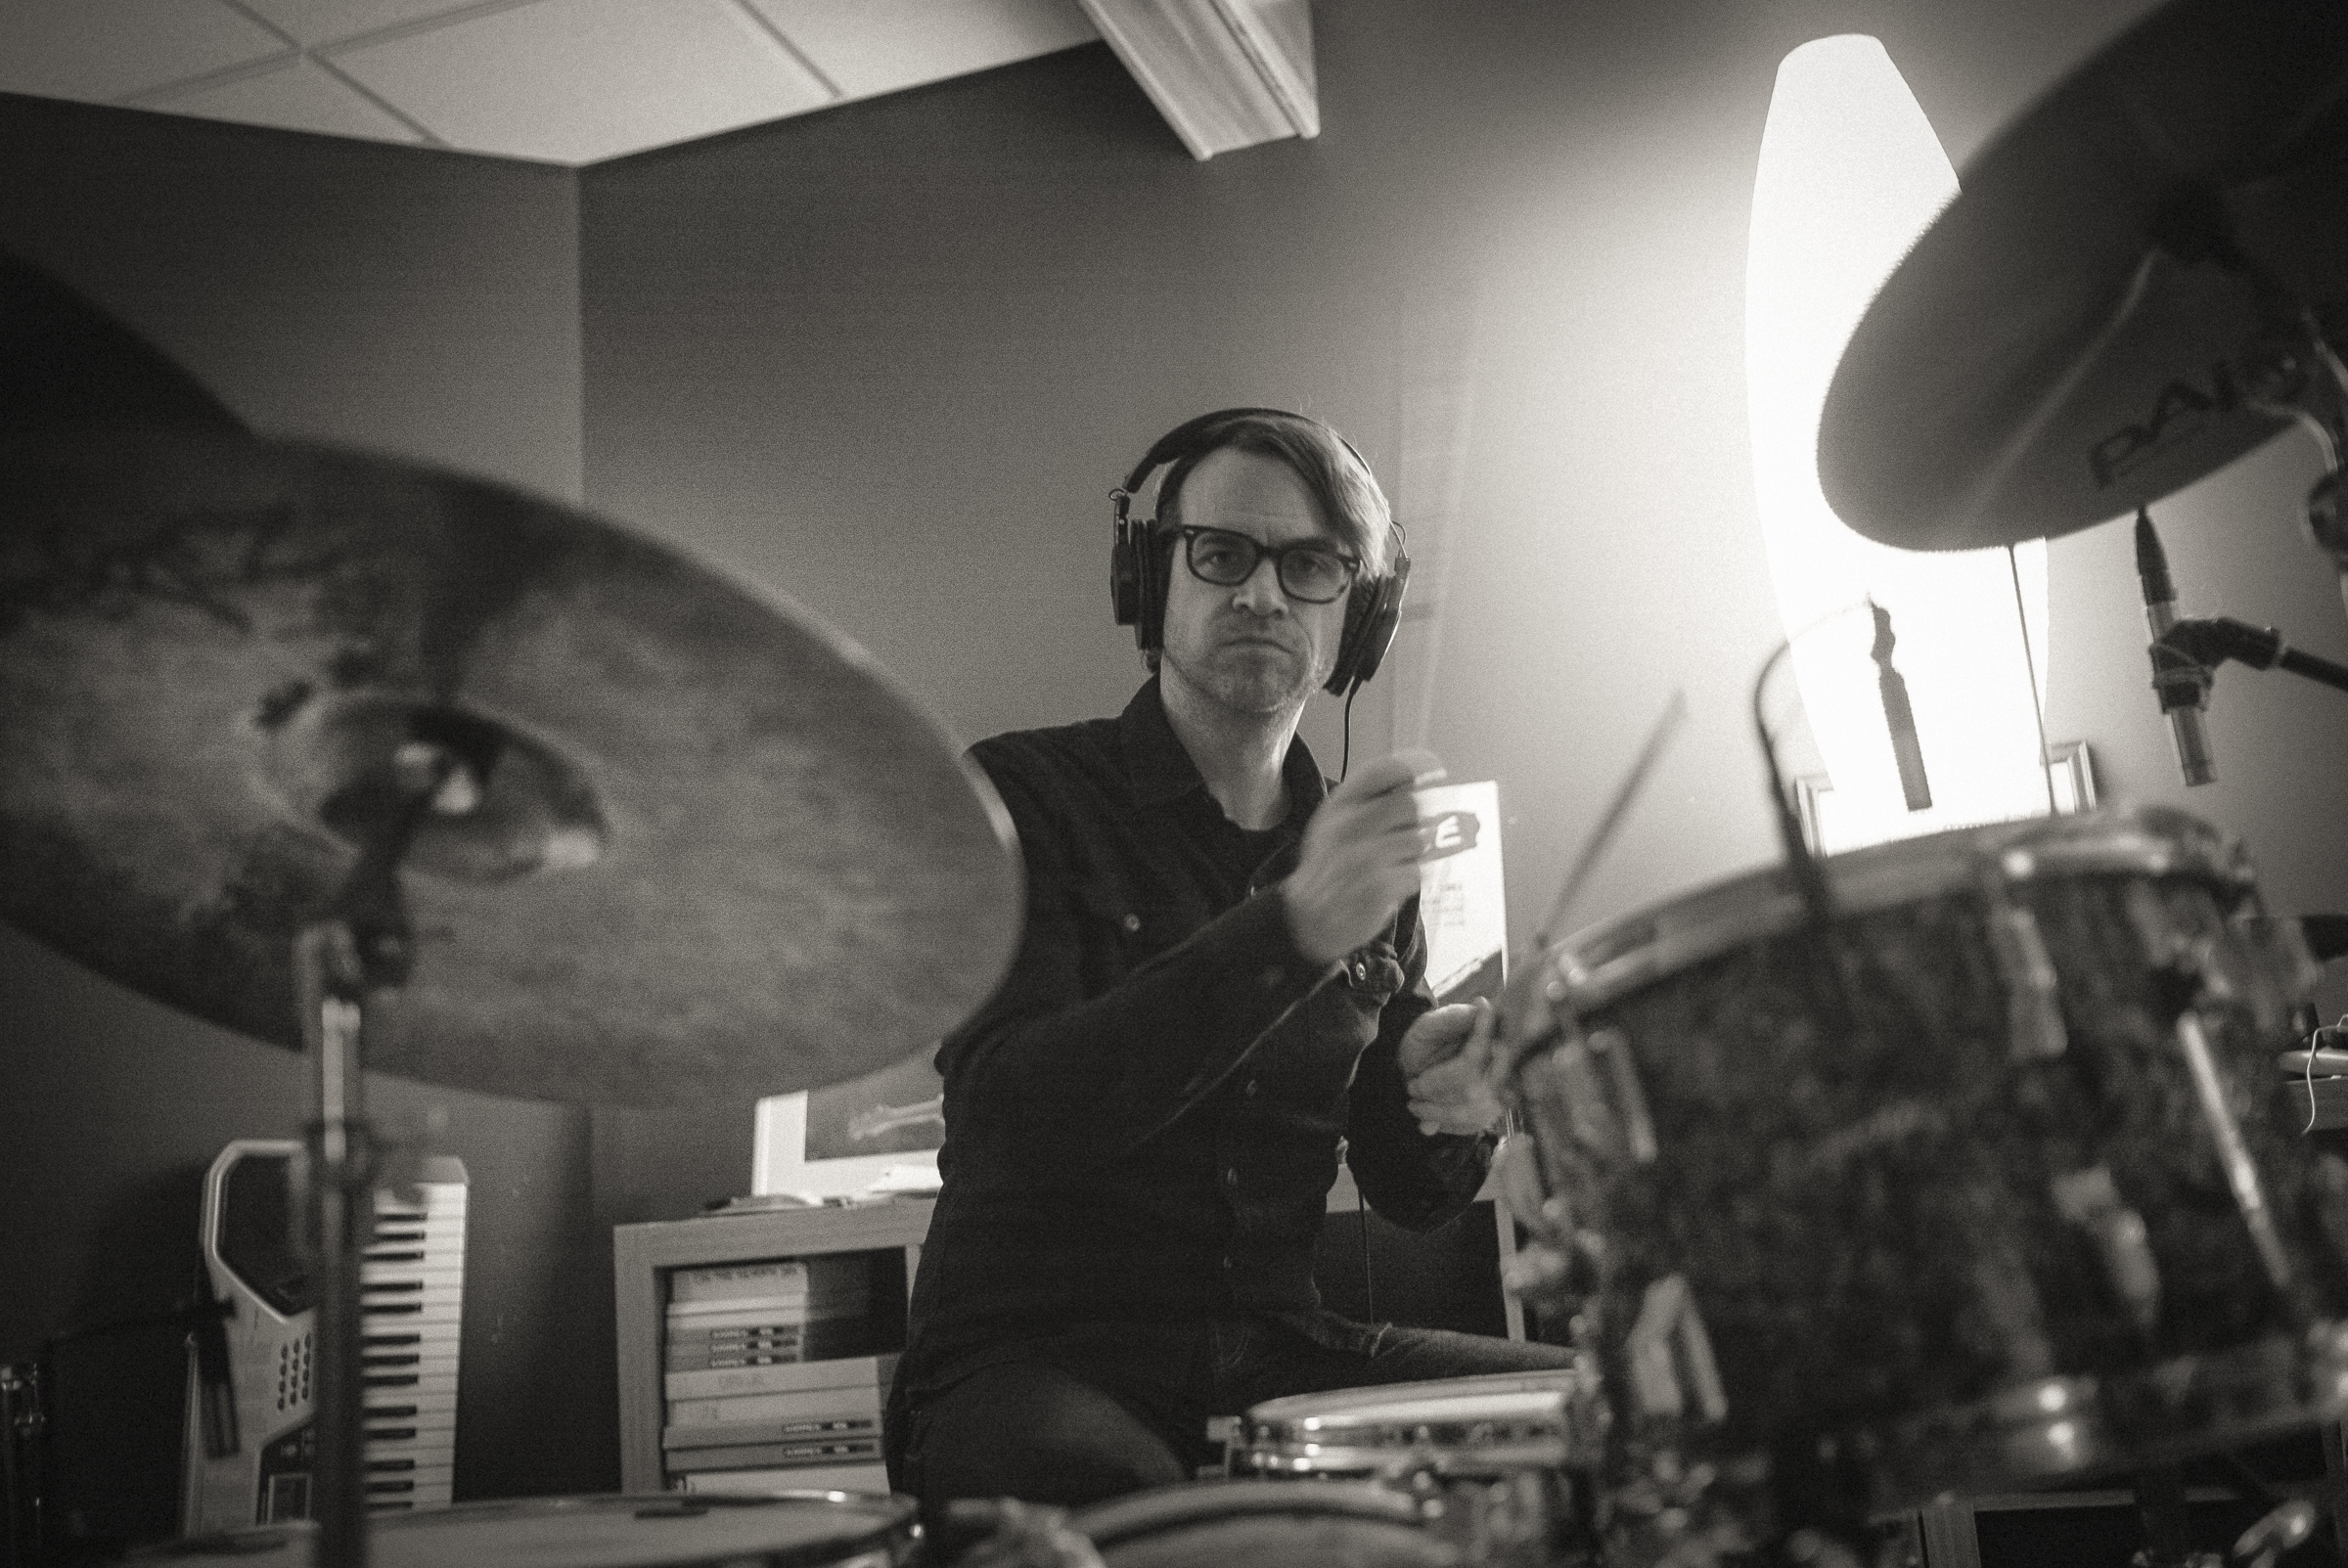 MIKE TITTEL - Drums. Singer/Songwriter @ Cincinnati's New Sincerity Works and Pretty Bird. Drummer @ Pidgin, Loud Family. Principal, Fruit Hill Recording Studio.